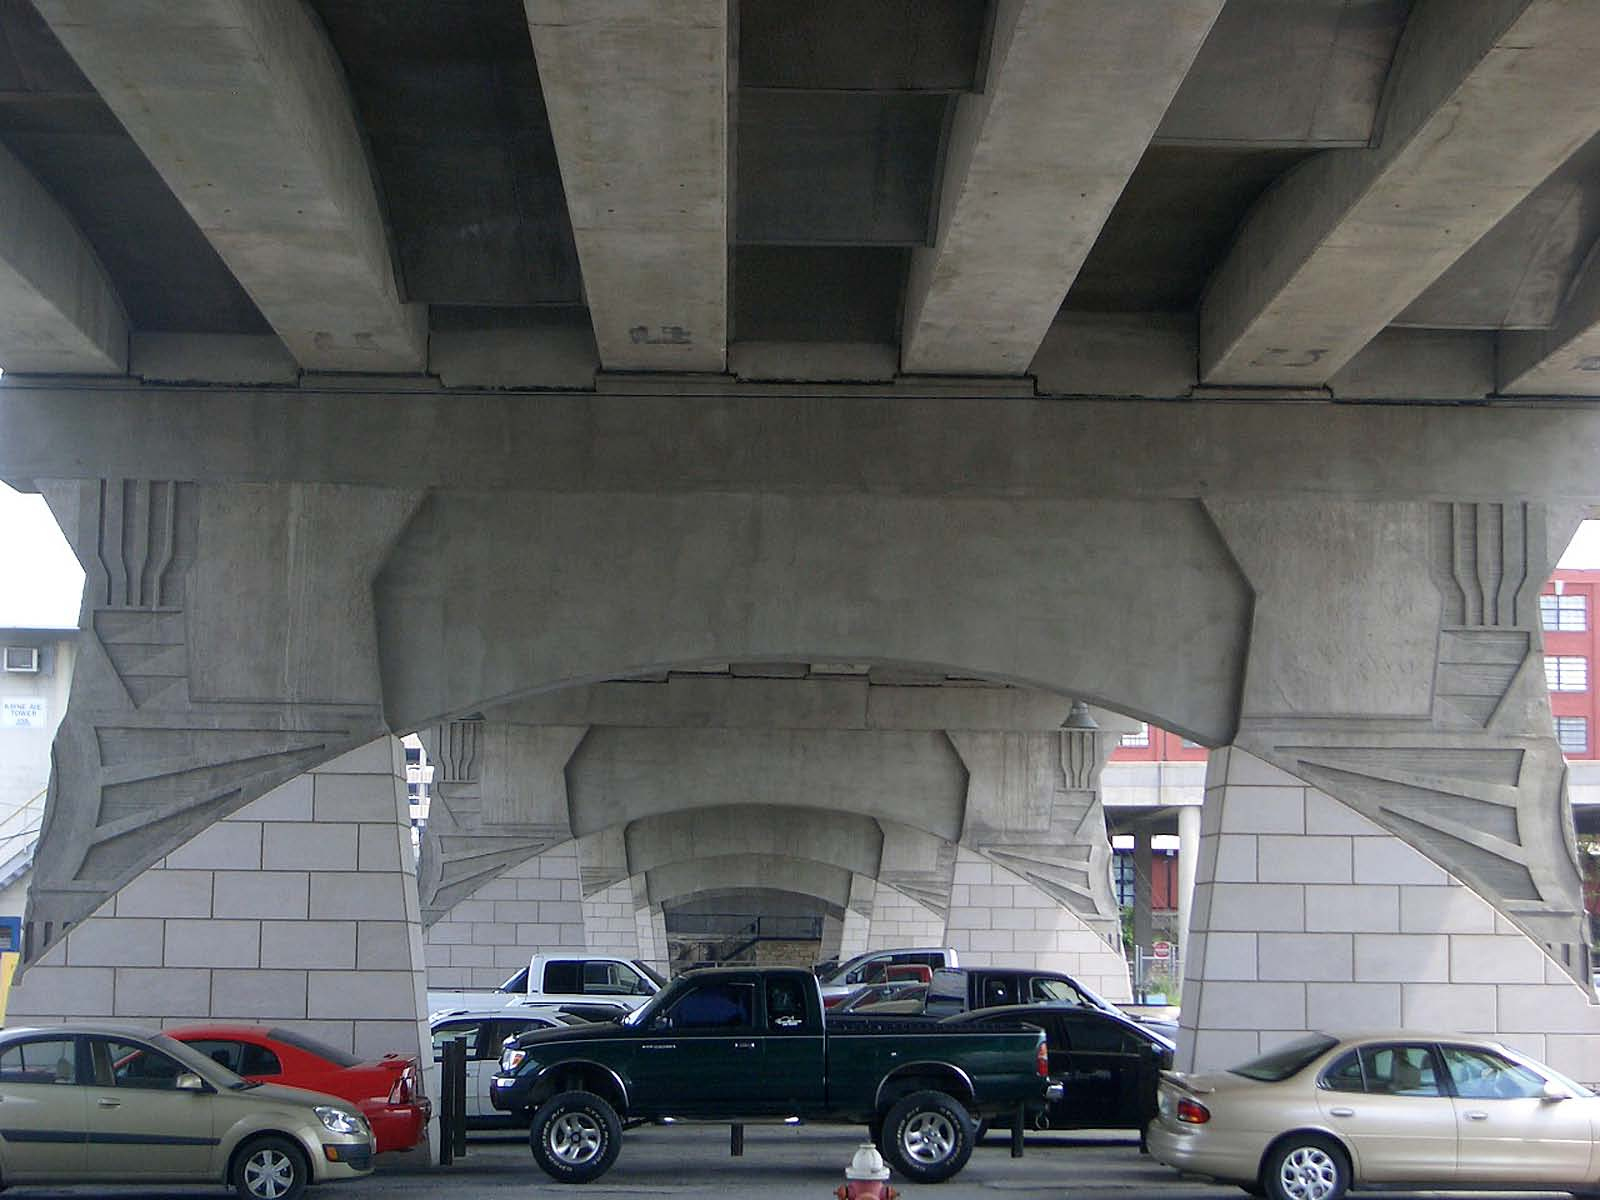 The 774-foot-long, three-lane Demonbreun Street Viaduct in Nashville, Tenn., pays homage to the city's railroad heritage by displaying locomotive engine motifs on its poured-in-place concrete support piers.